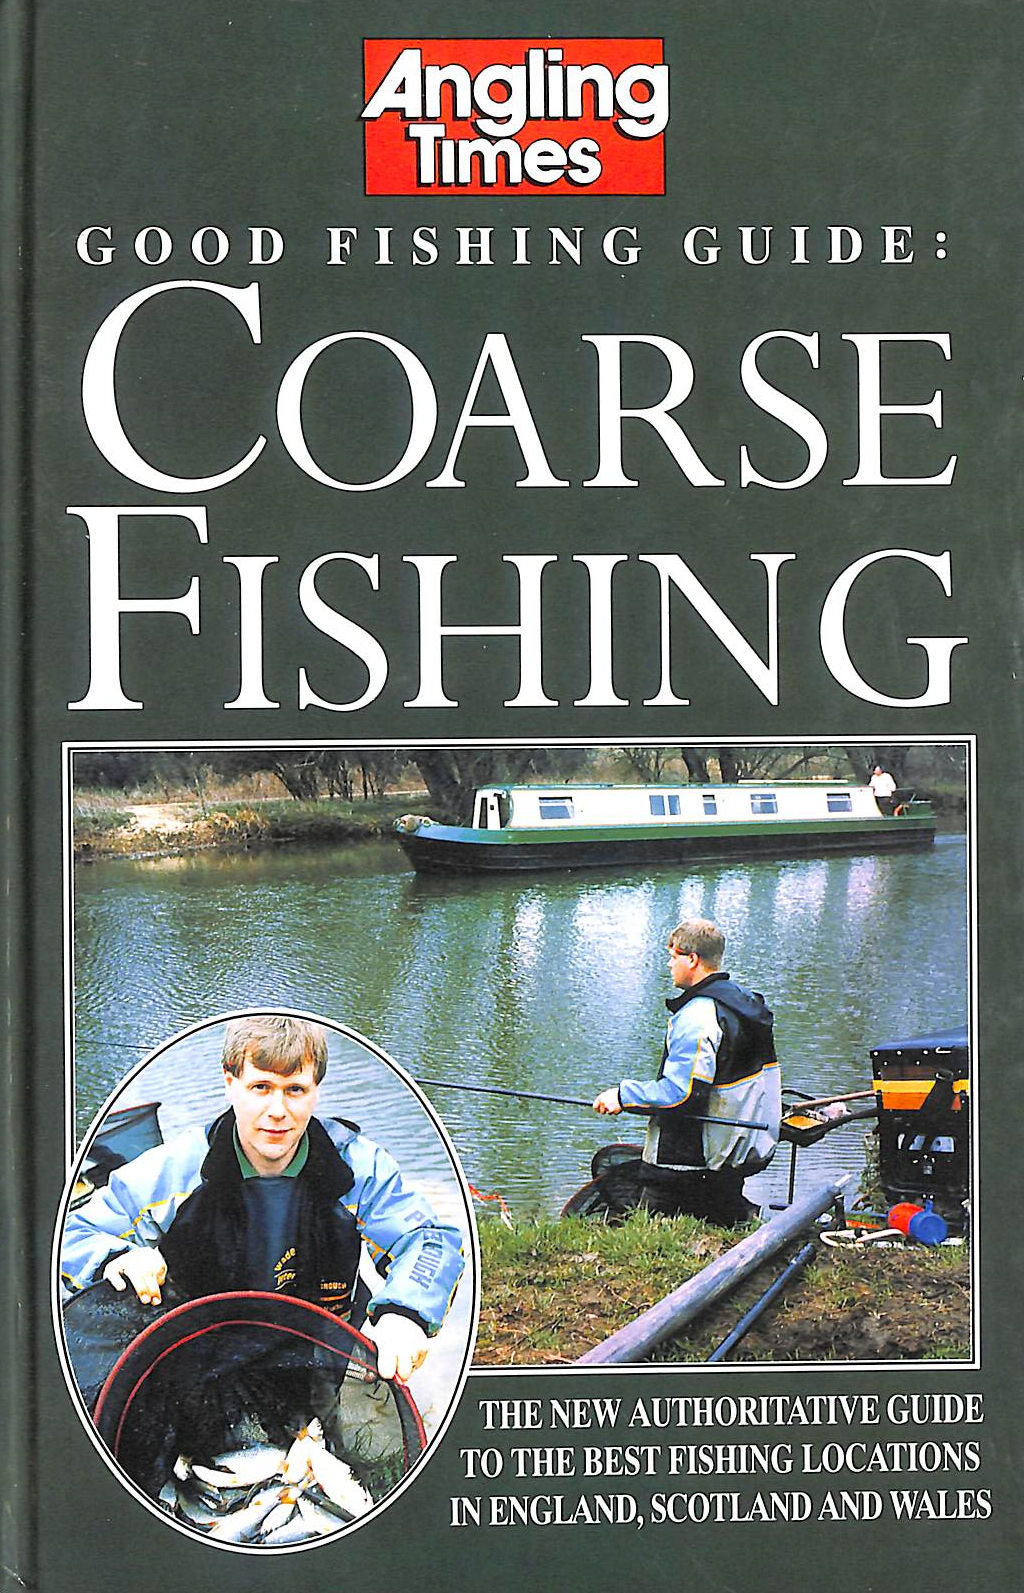 Image for Angling Times Good Fishing Guide: Coarse Fishing: New Authoritative Guide to the Best Fishing Locations in England, Scotland and Wales